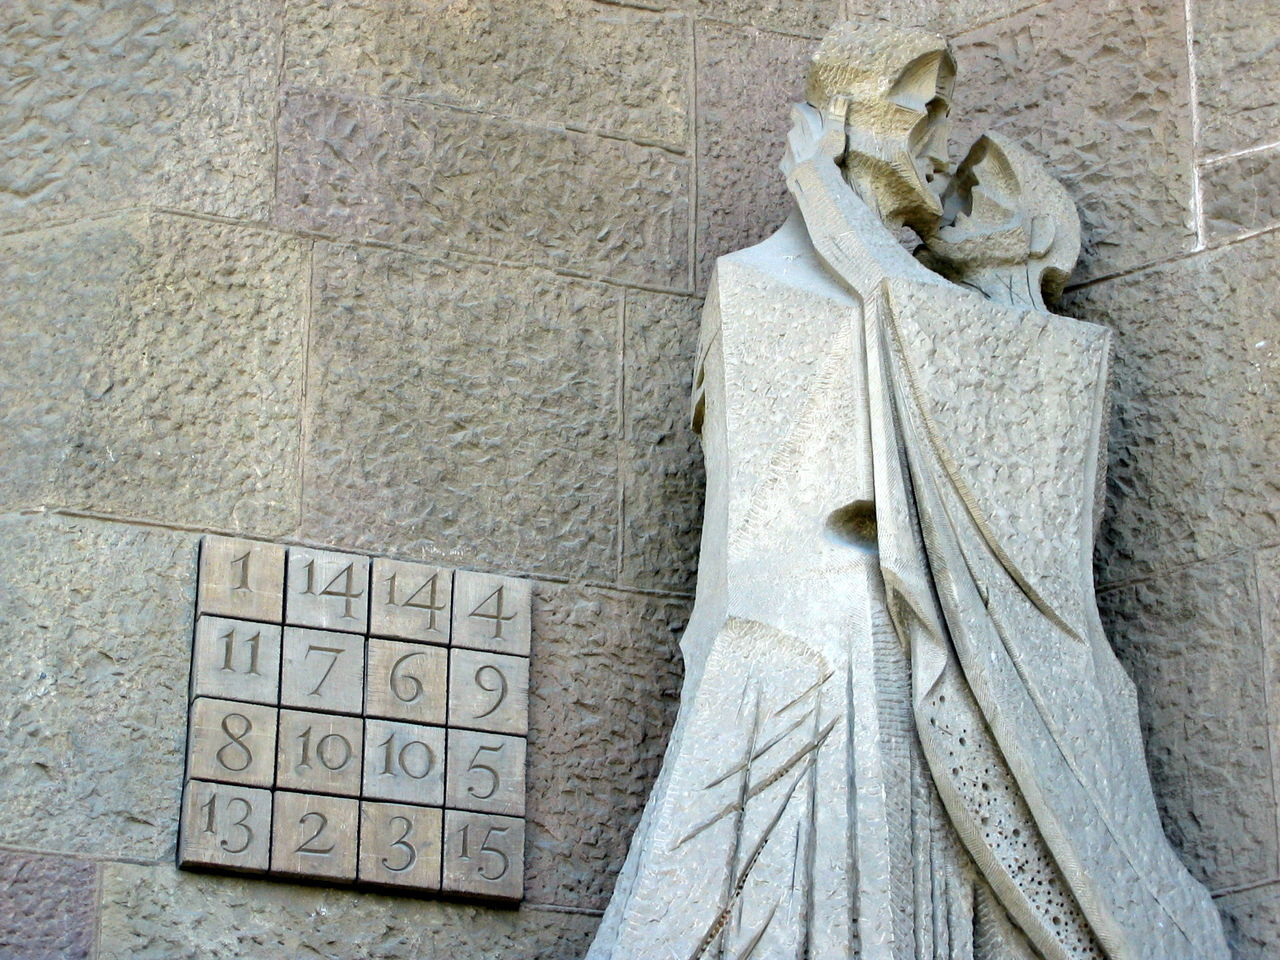 Architecture Barcelona Close-up Day Gaudi No People Outdoors Religion S